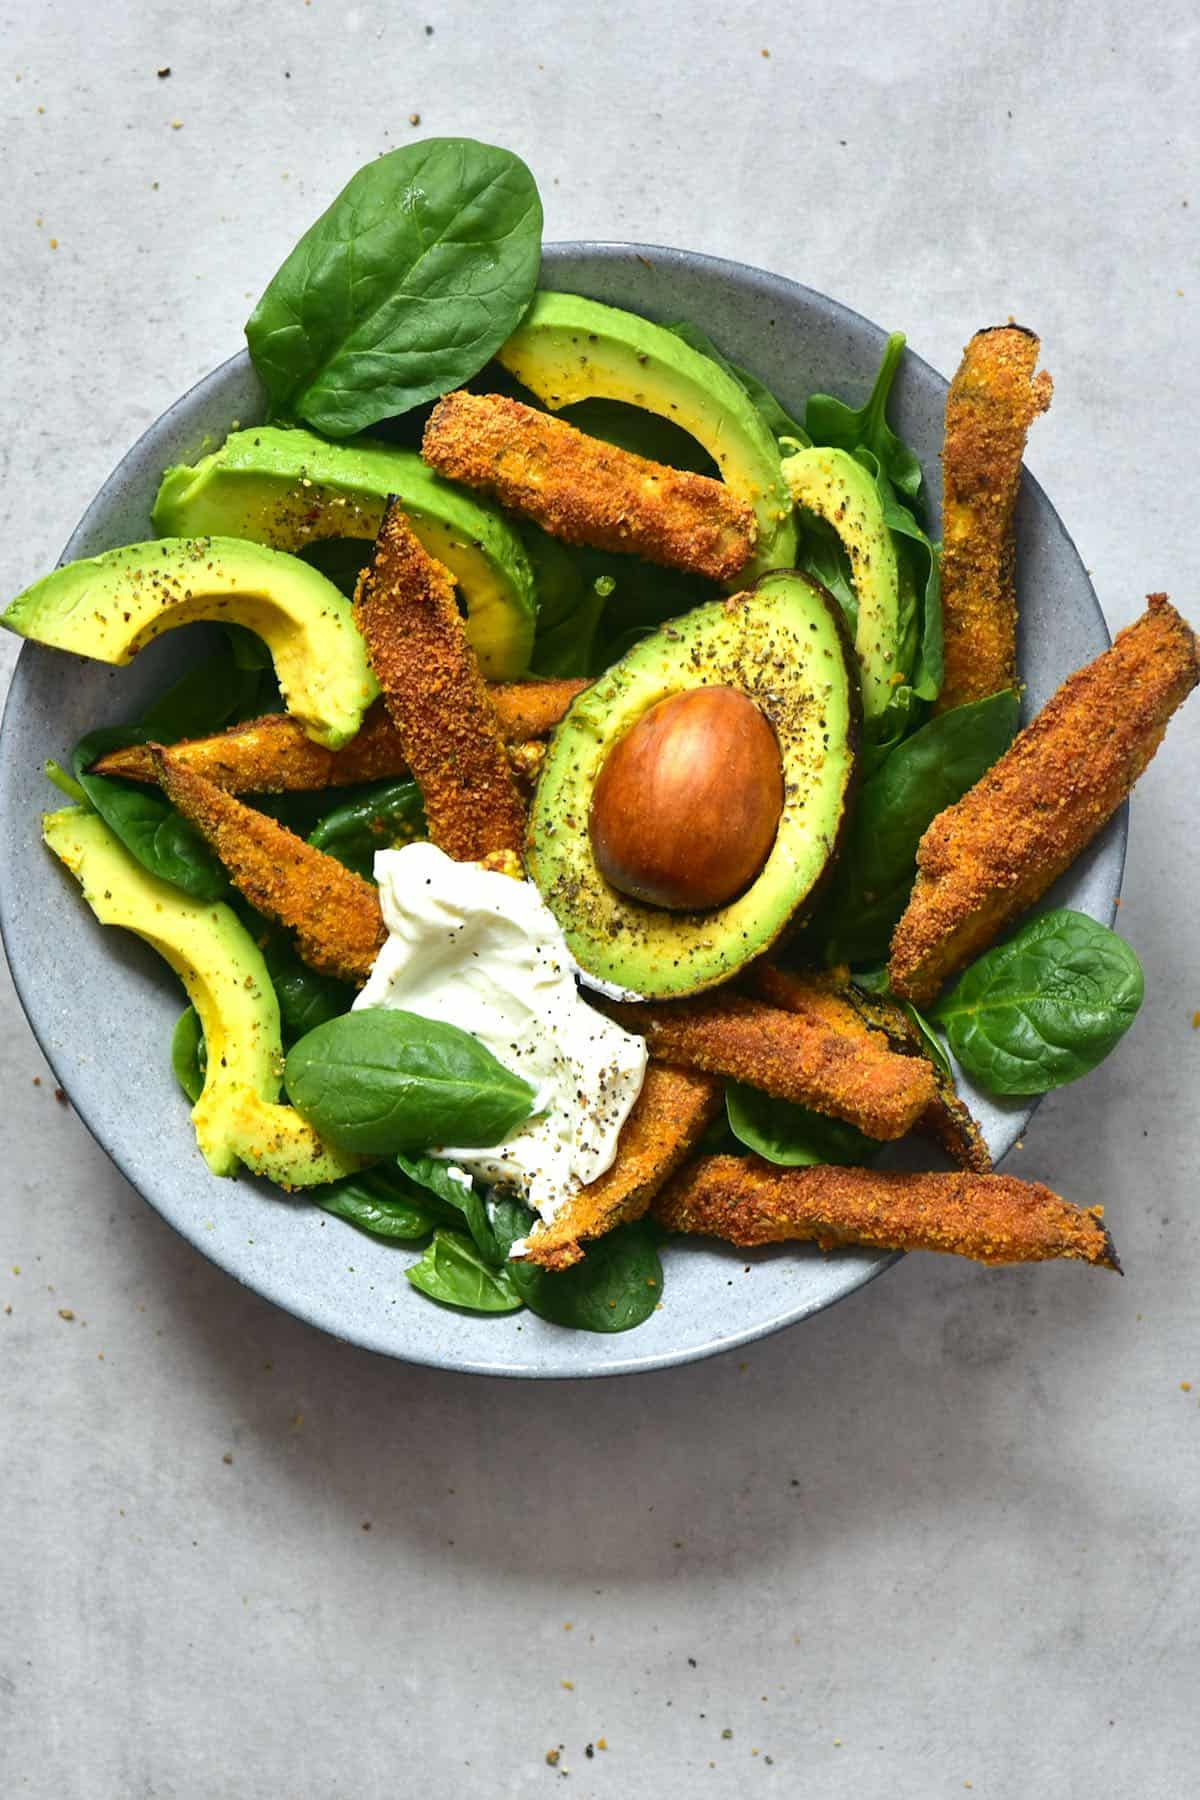 Baked eggplant fries served with spinach and avocado in a bowl